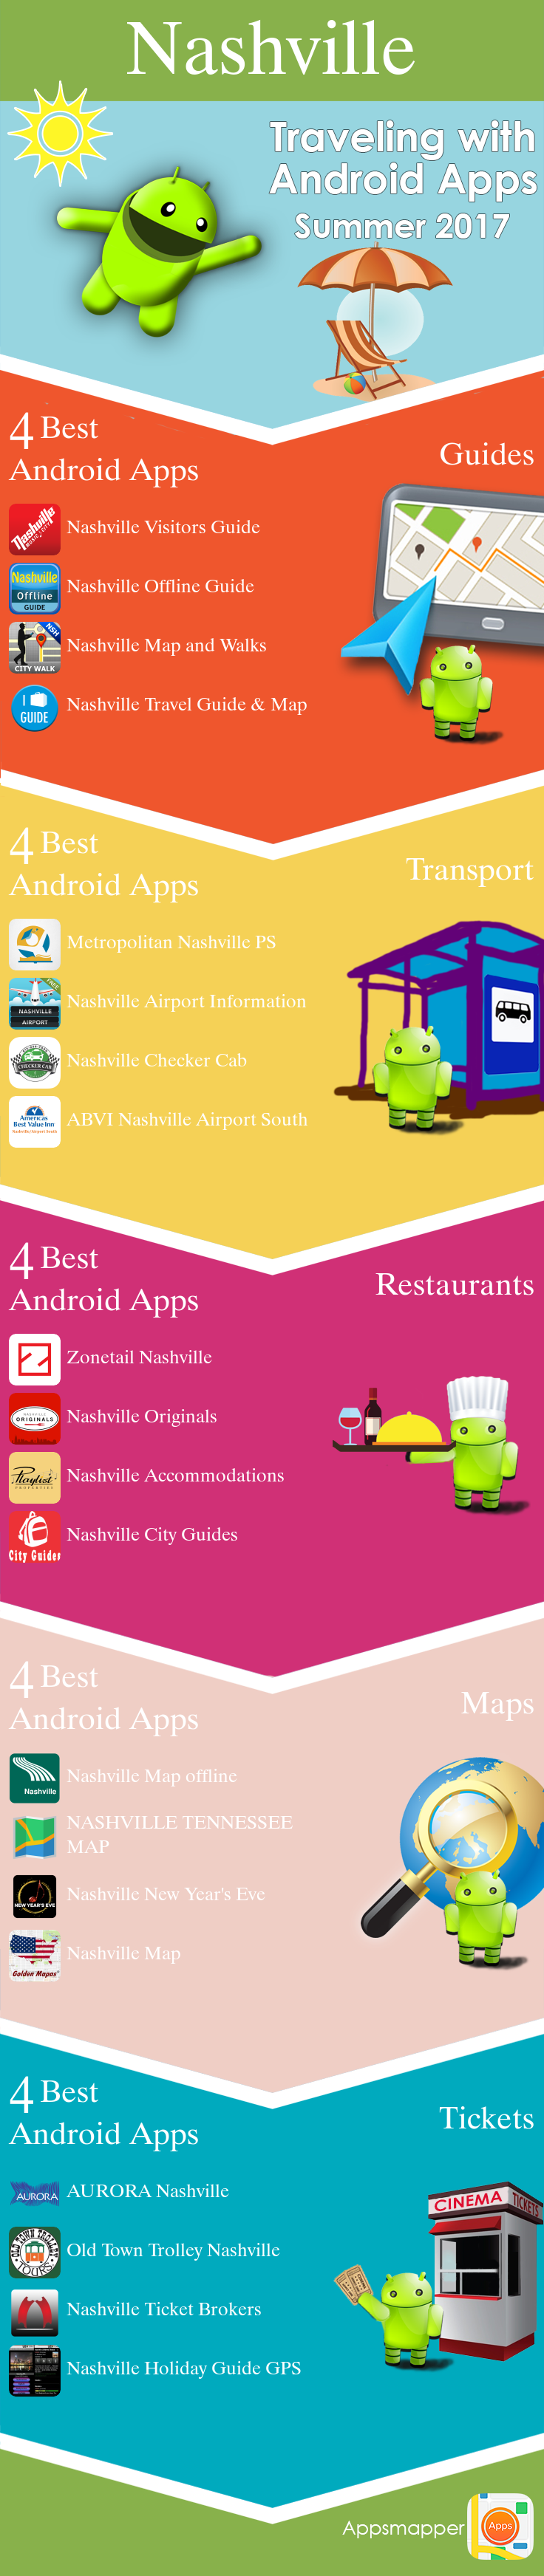 Nashville Android apps Travel Guides, Maps